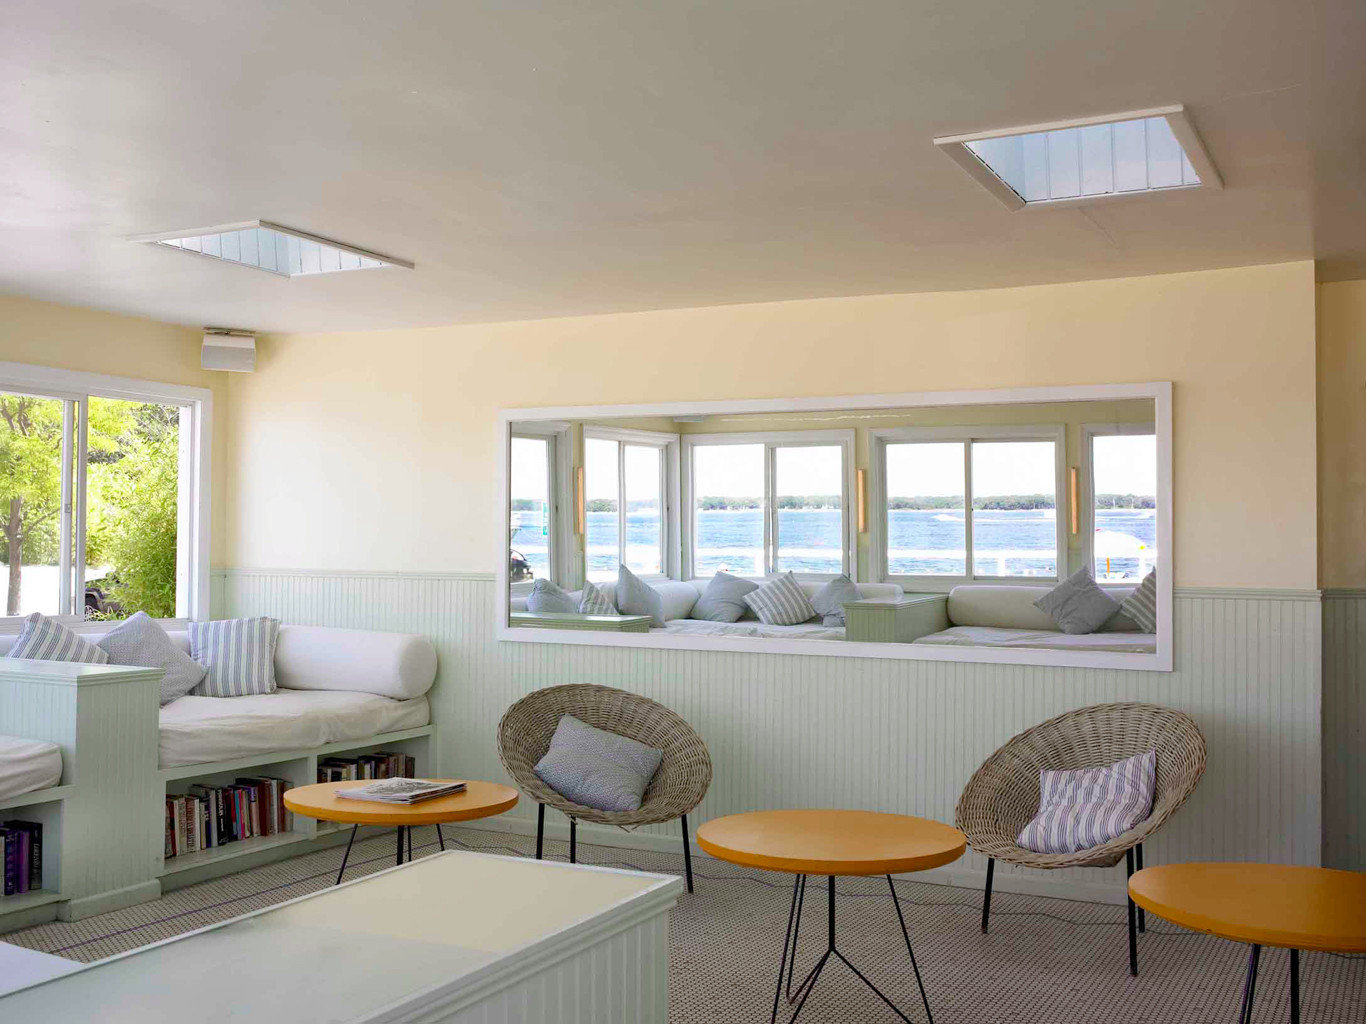 Beachfront Classic New York Romance Scenic views Trip Ideas Weekend Getaways property condominium yellow living room home Villa daylighting cottage